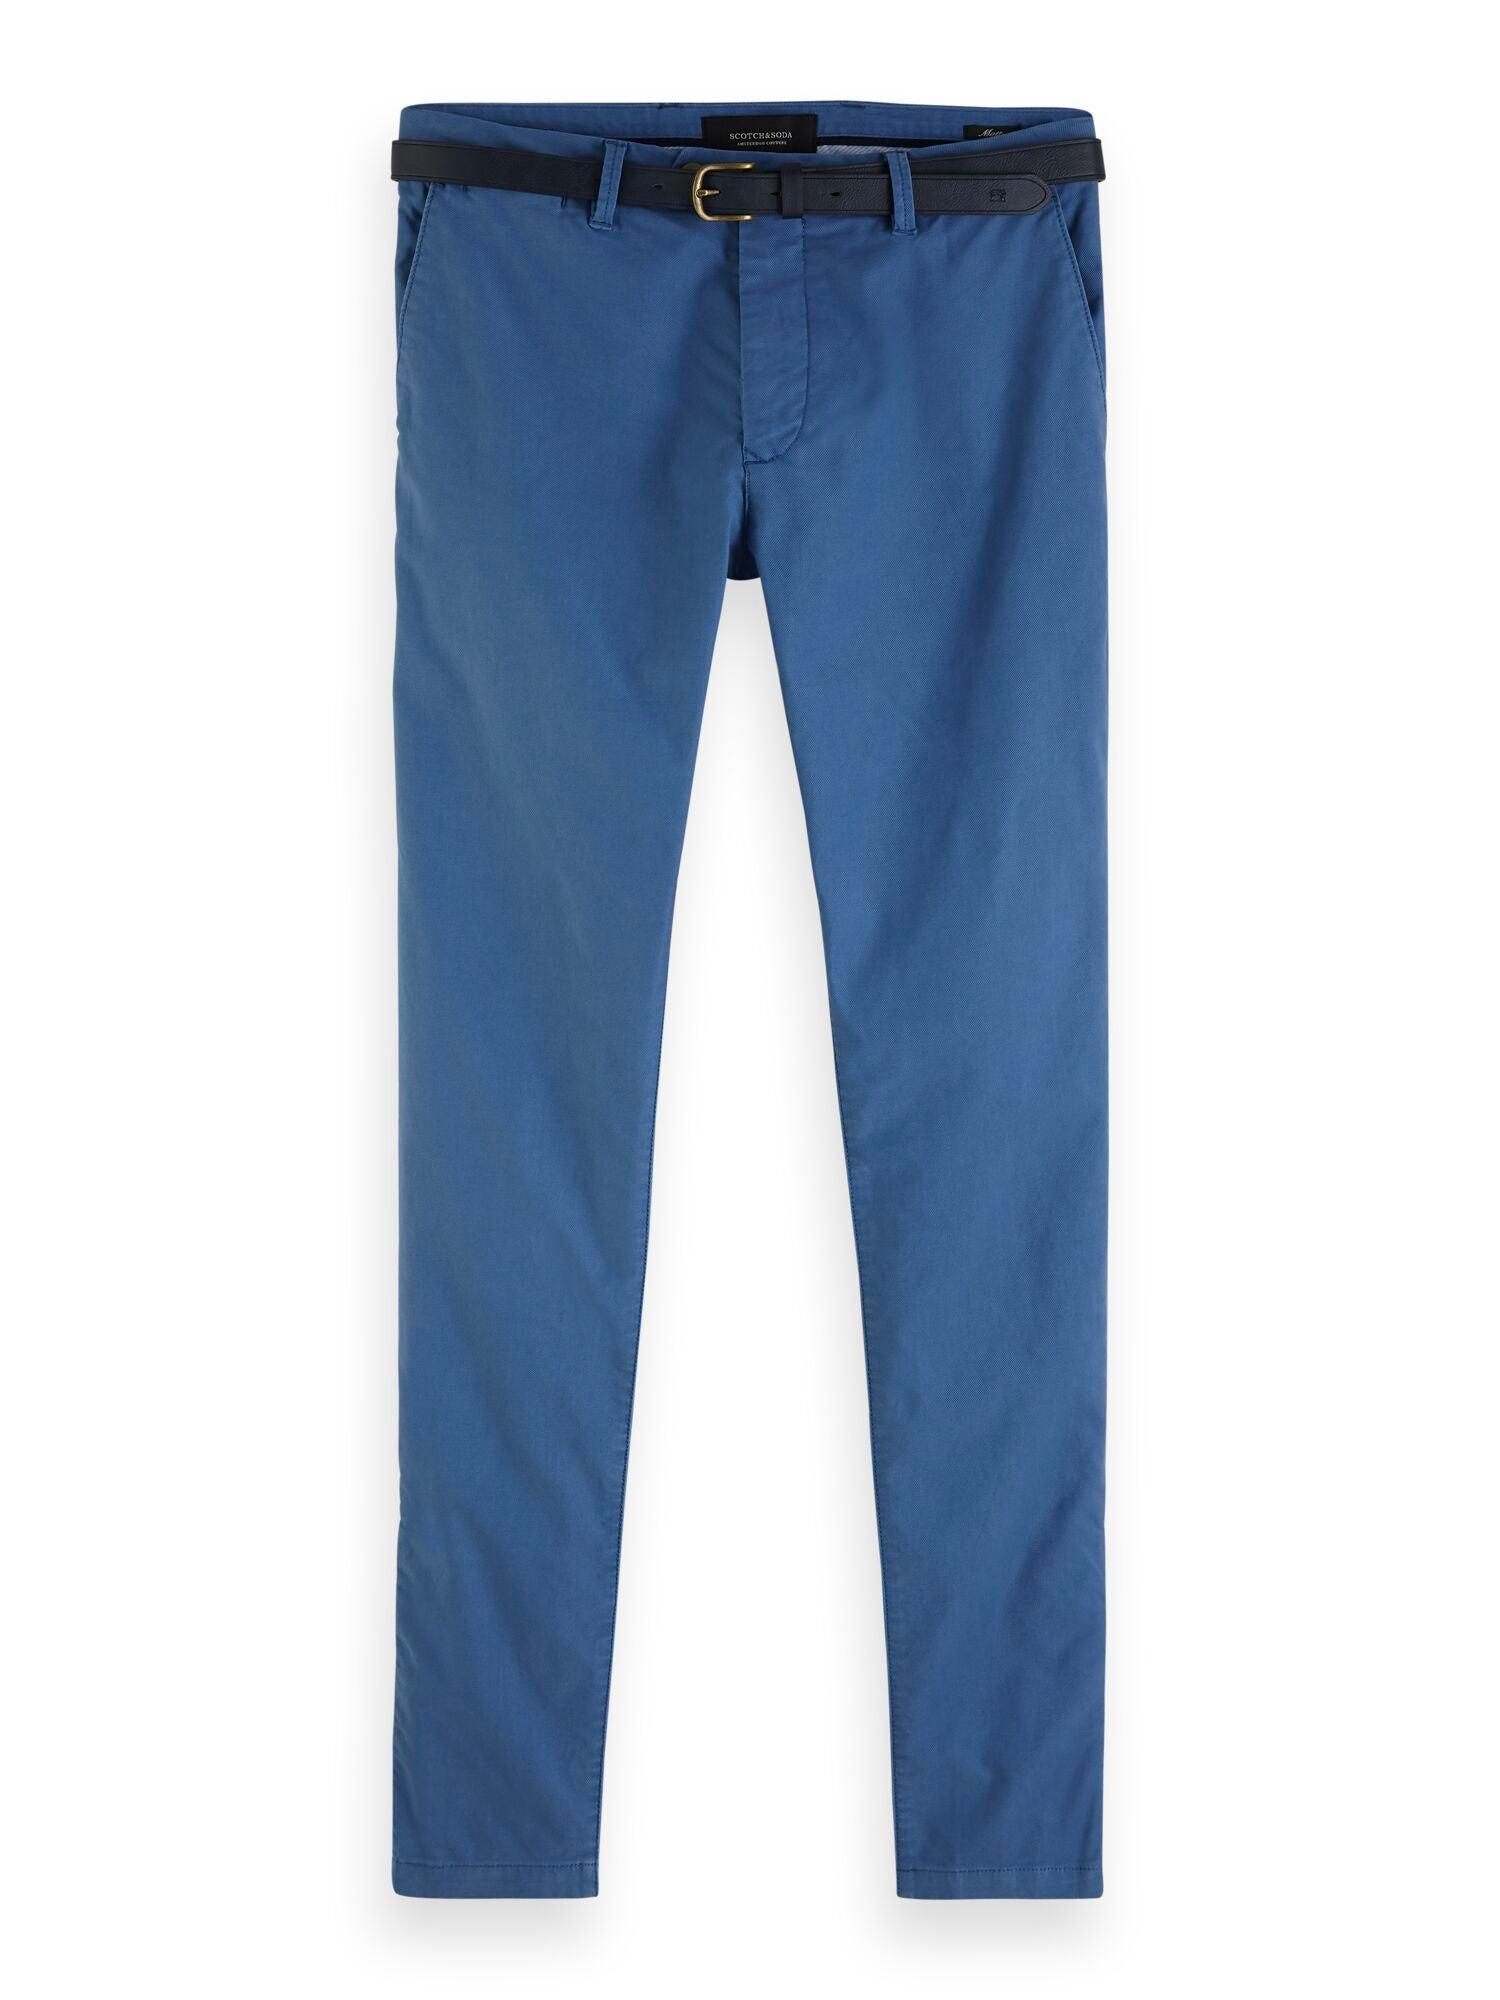 Scotch and Soda Mott Chino - Worker Blue - Mitchell McCabe Menswear